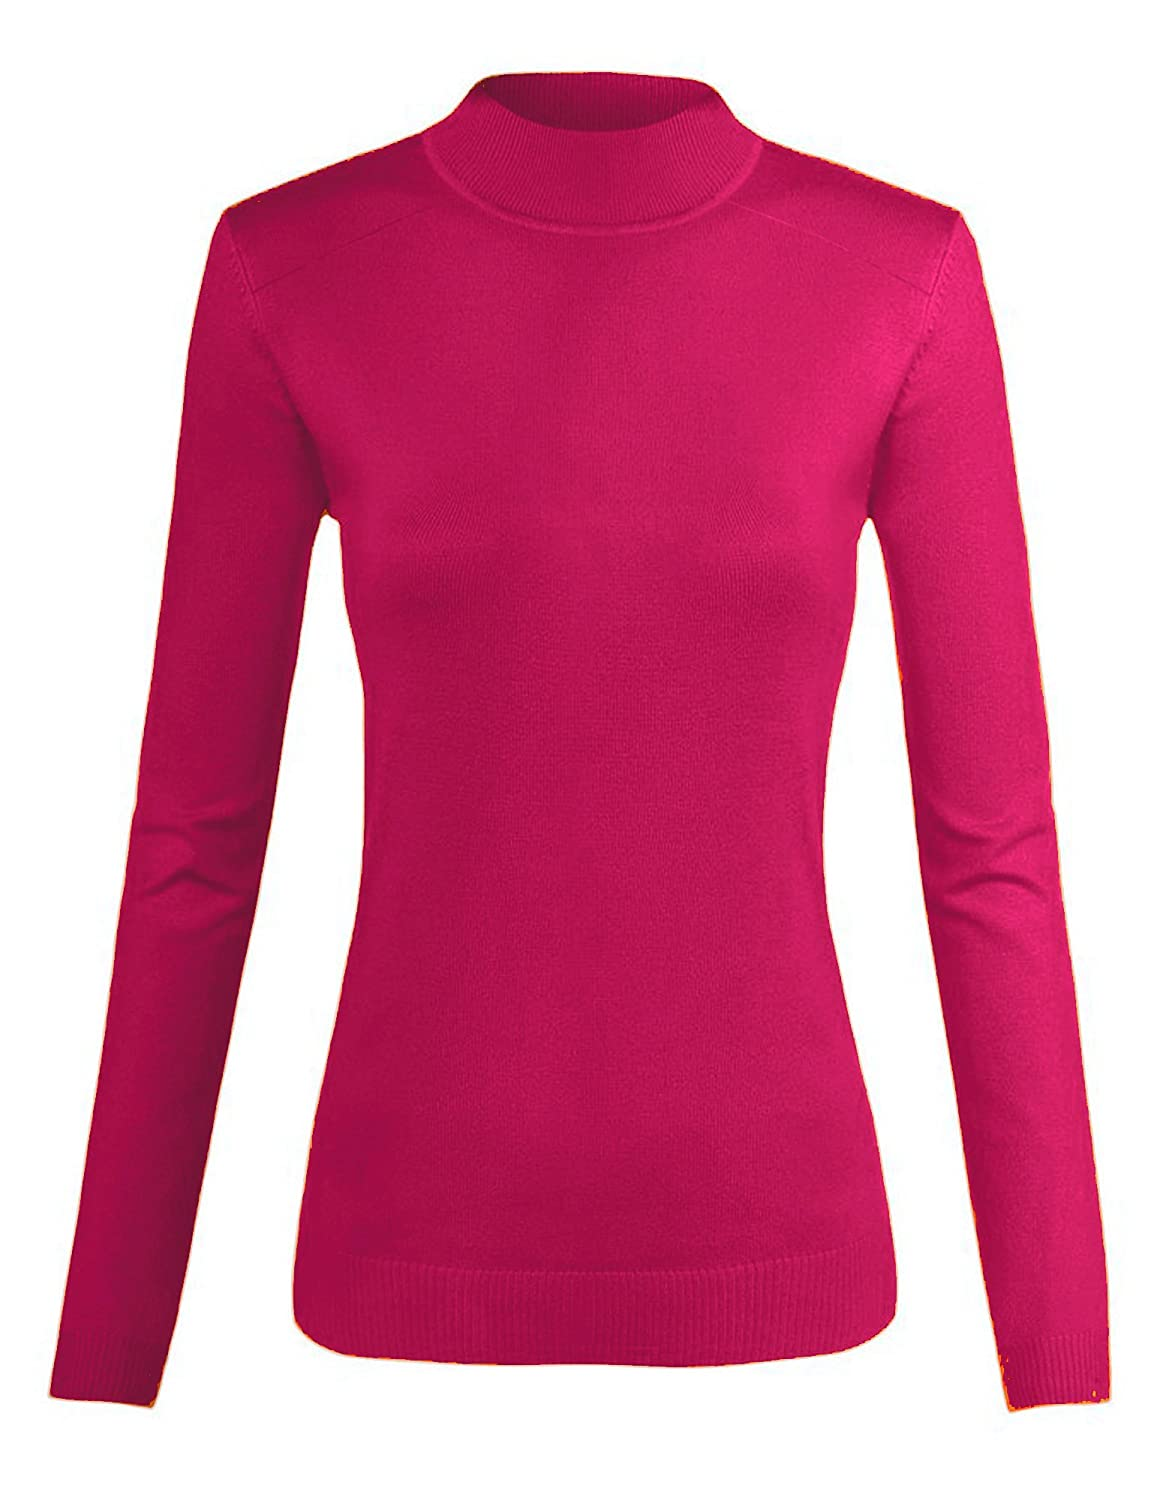 Top Legging Women's Comfy Long Sleeve Basic Mock Turtleneck Knitted Sweater